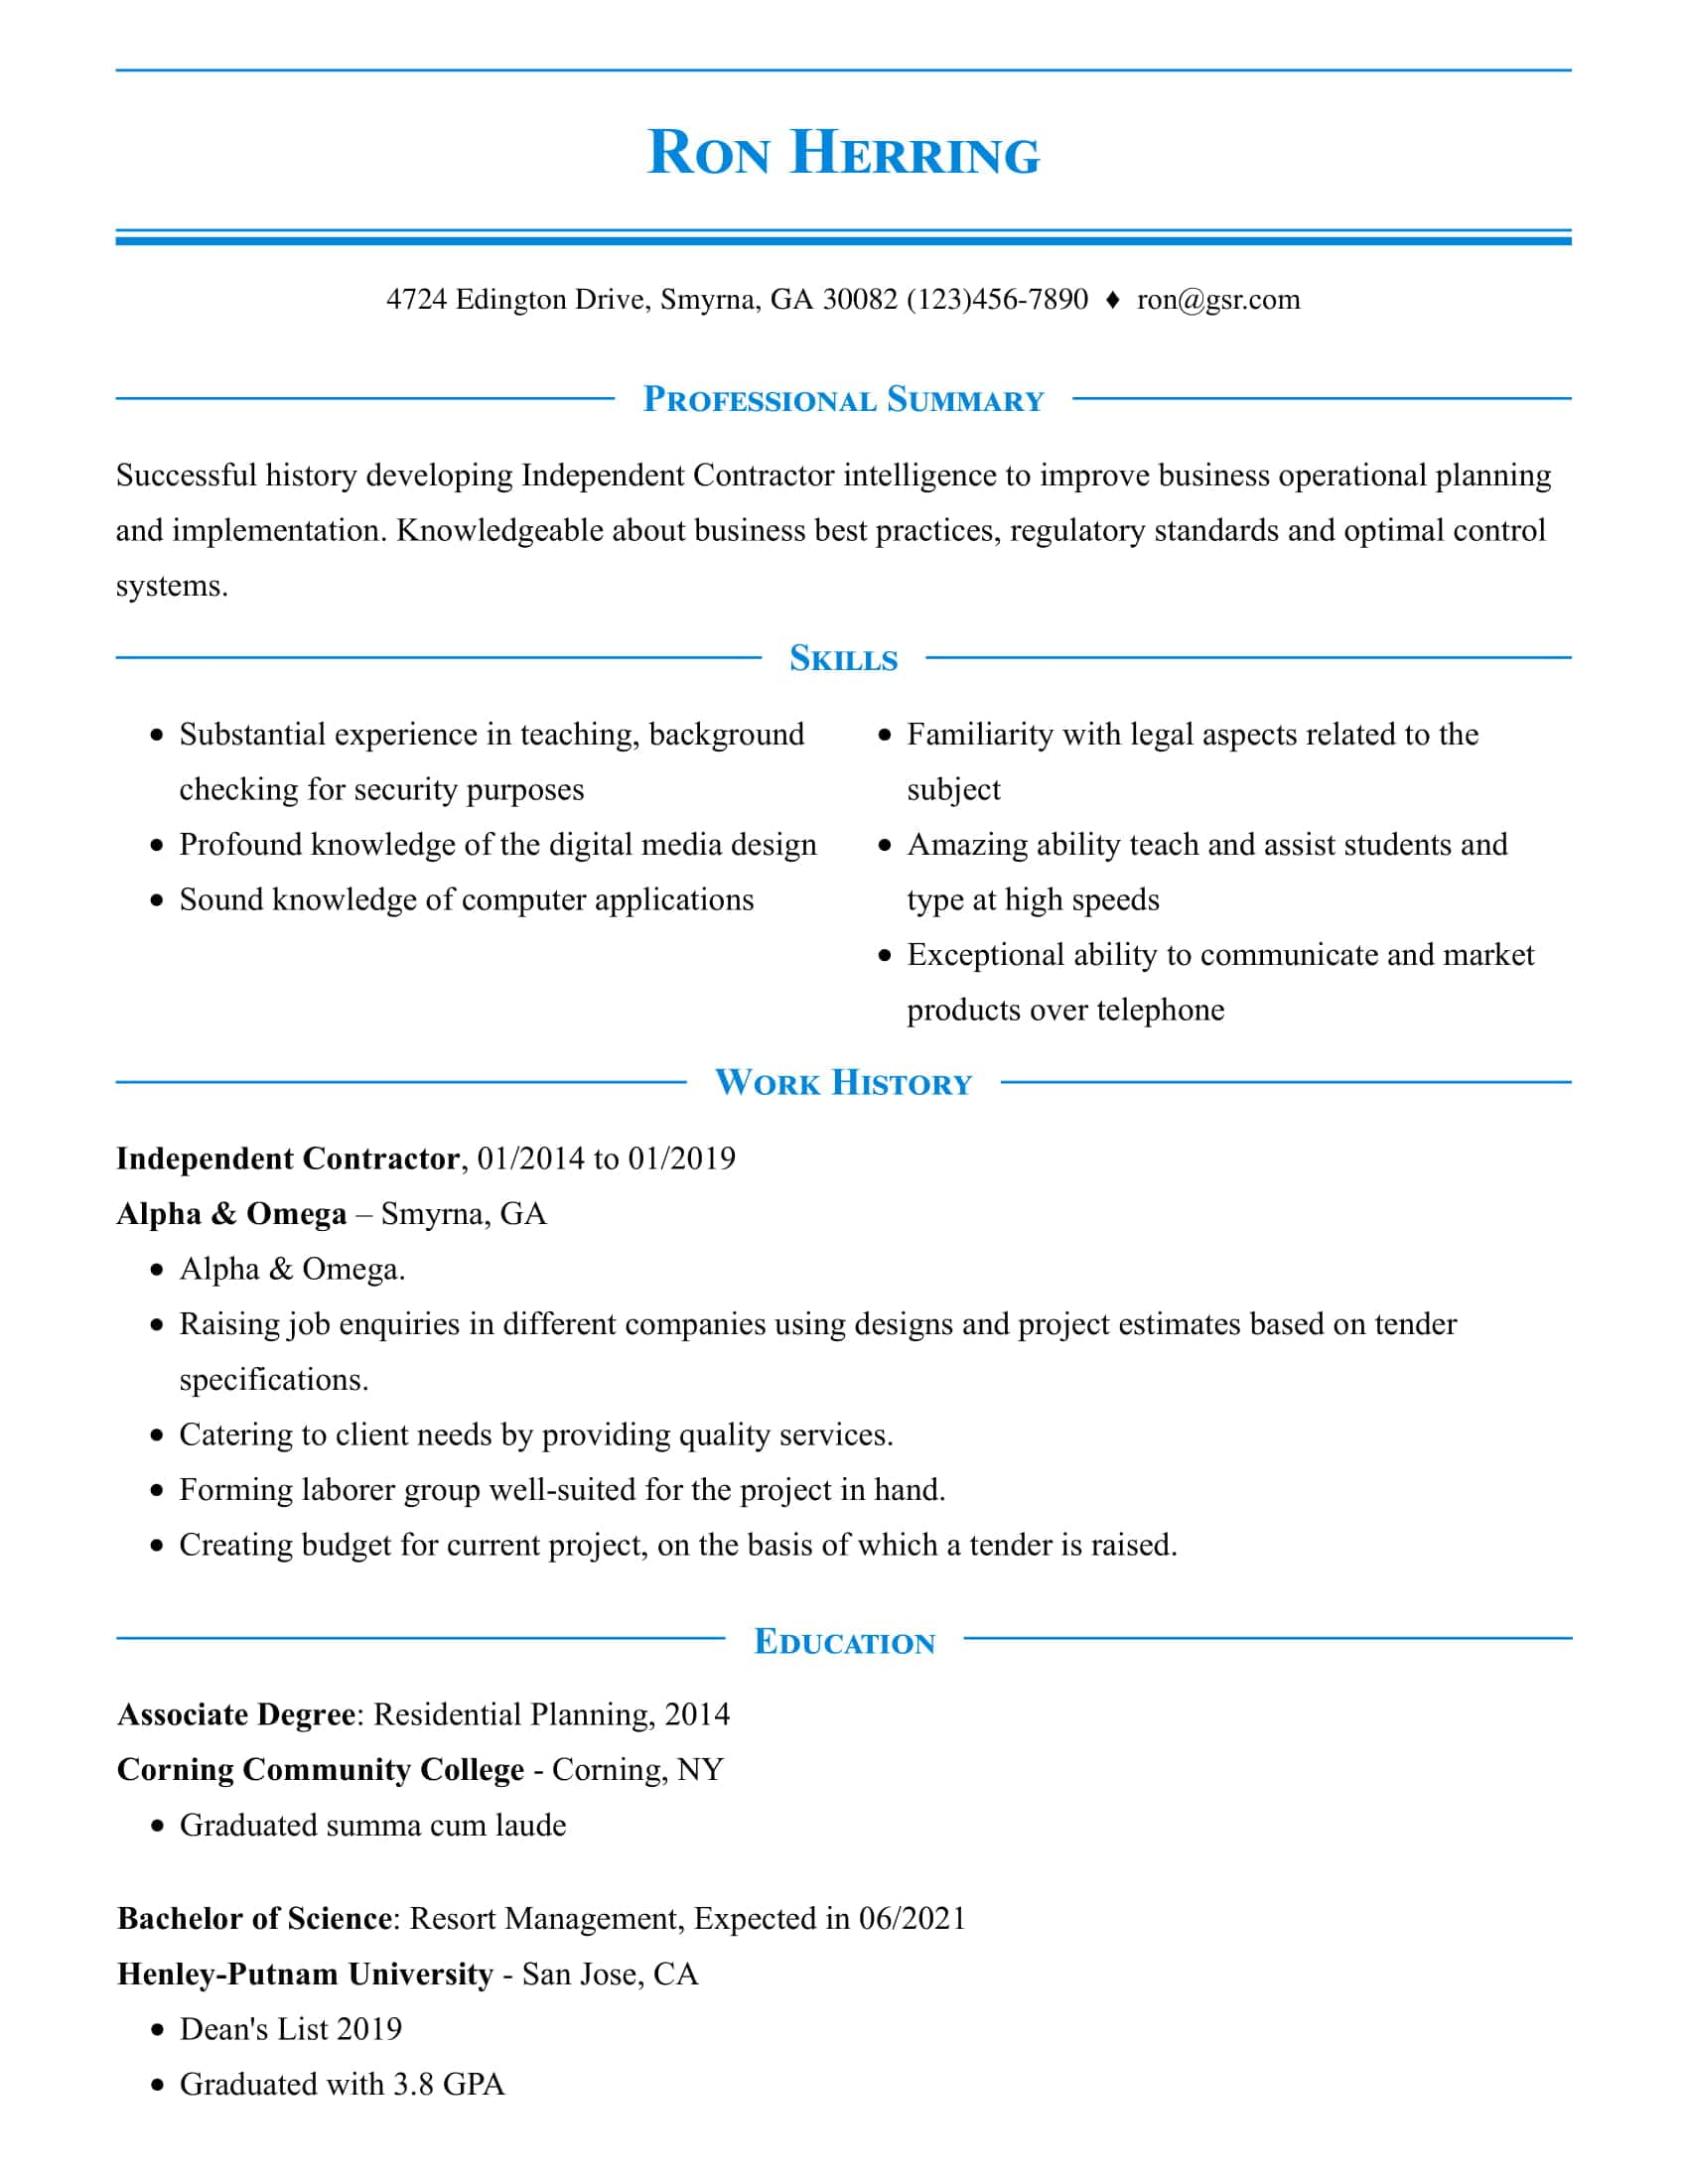 Simple Pinstripe Blue Resume Template